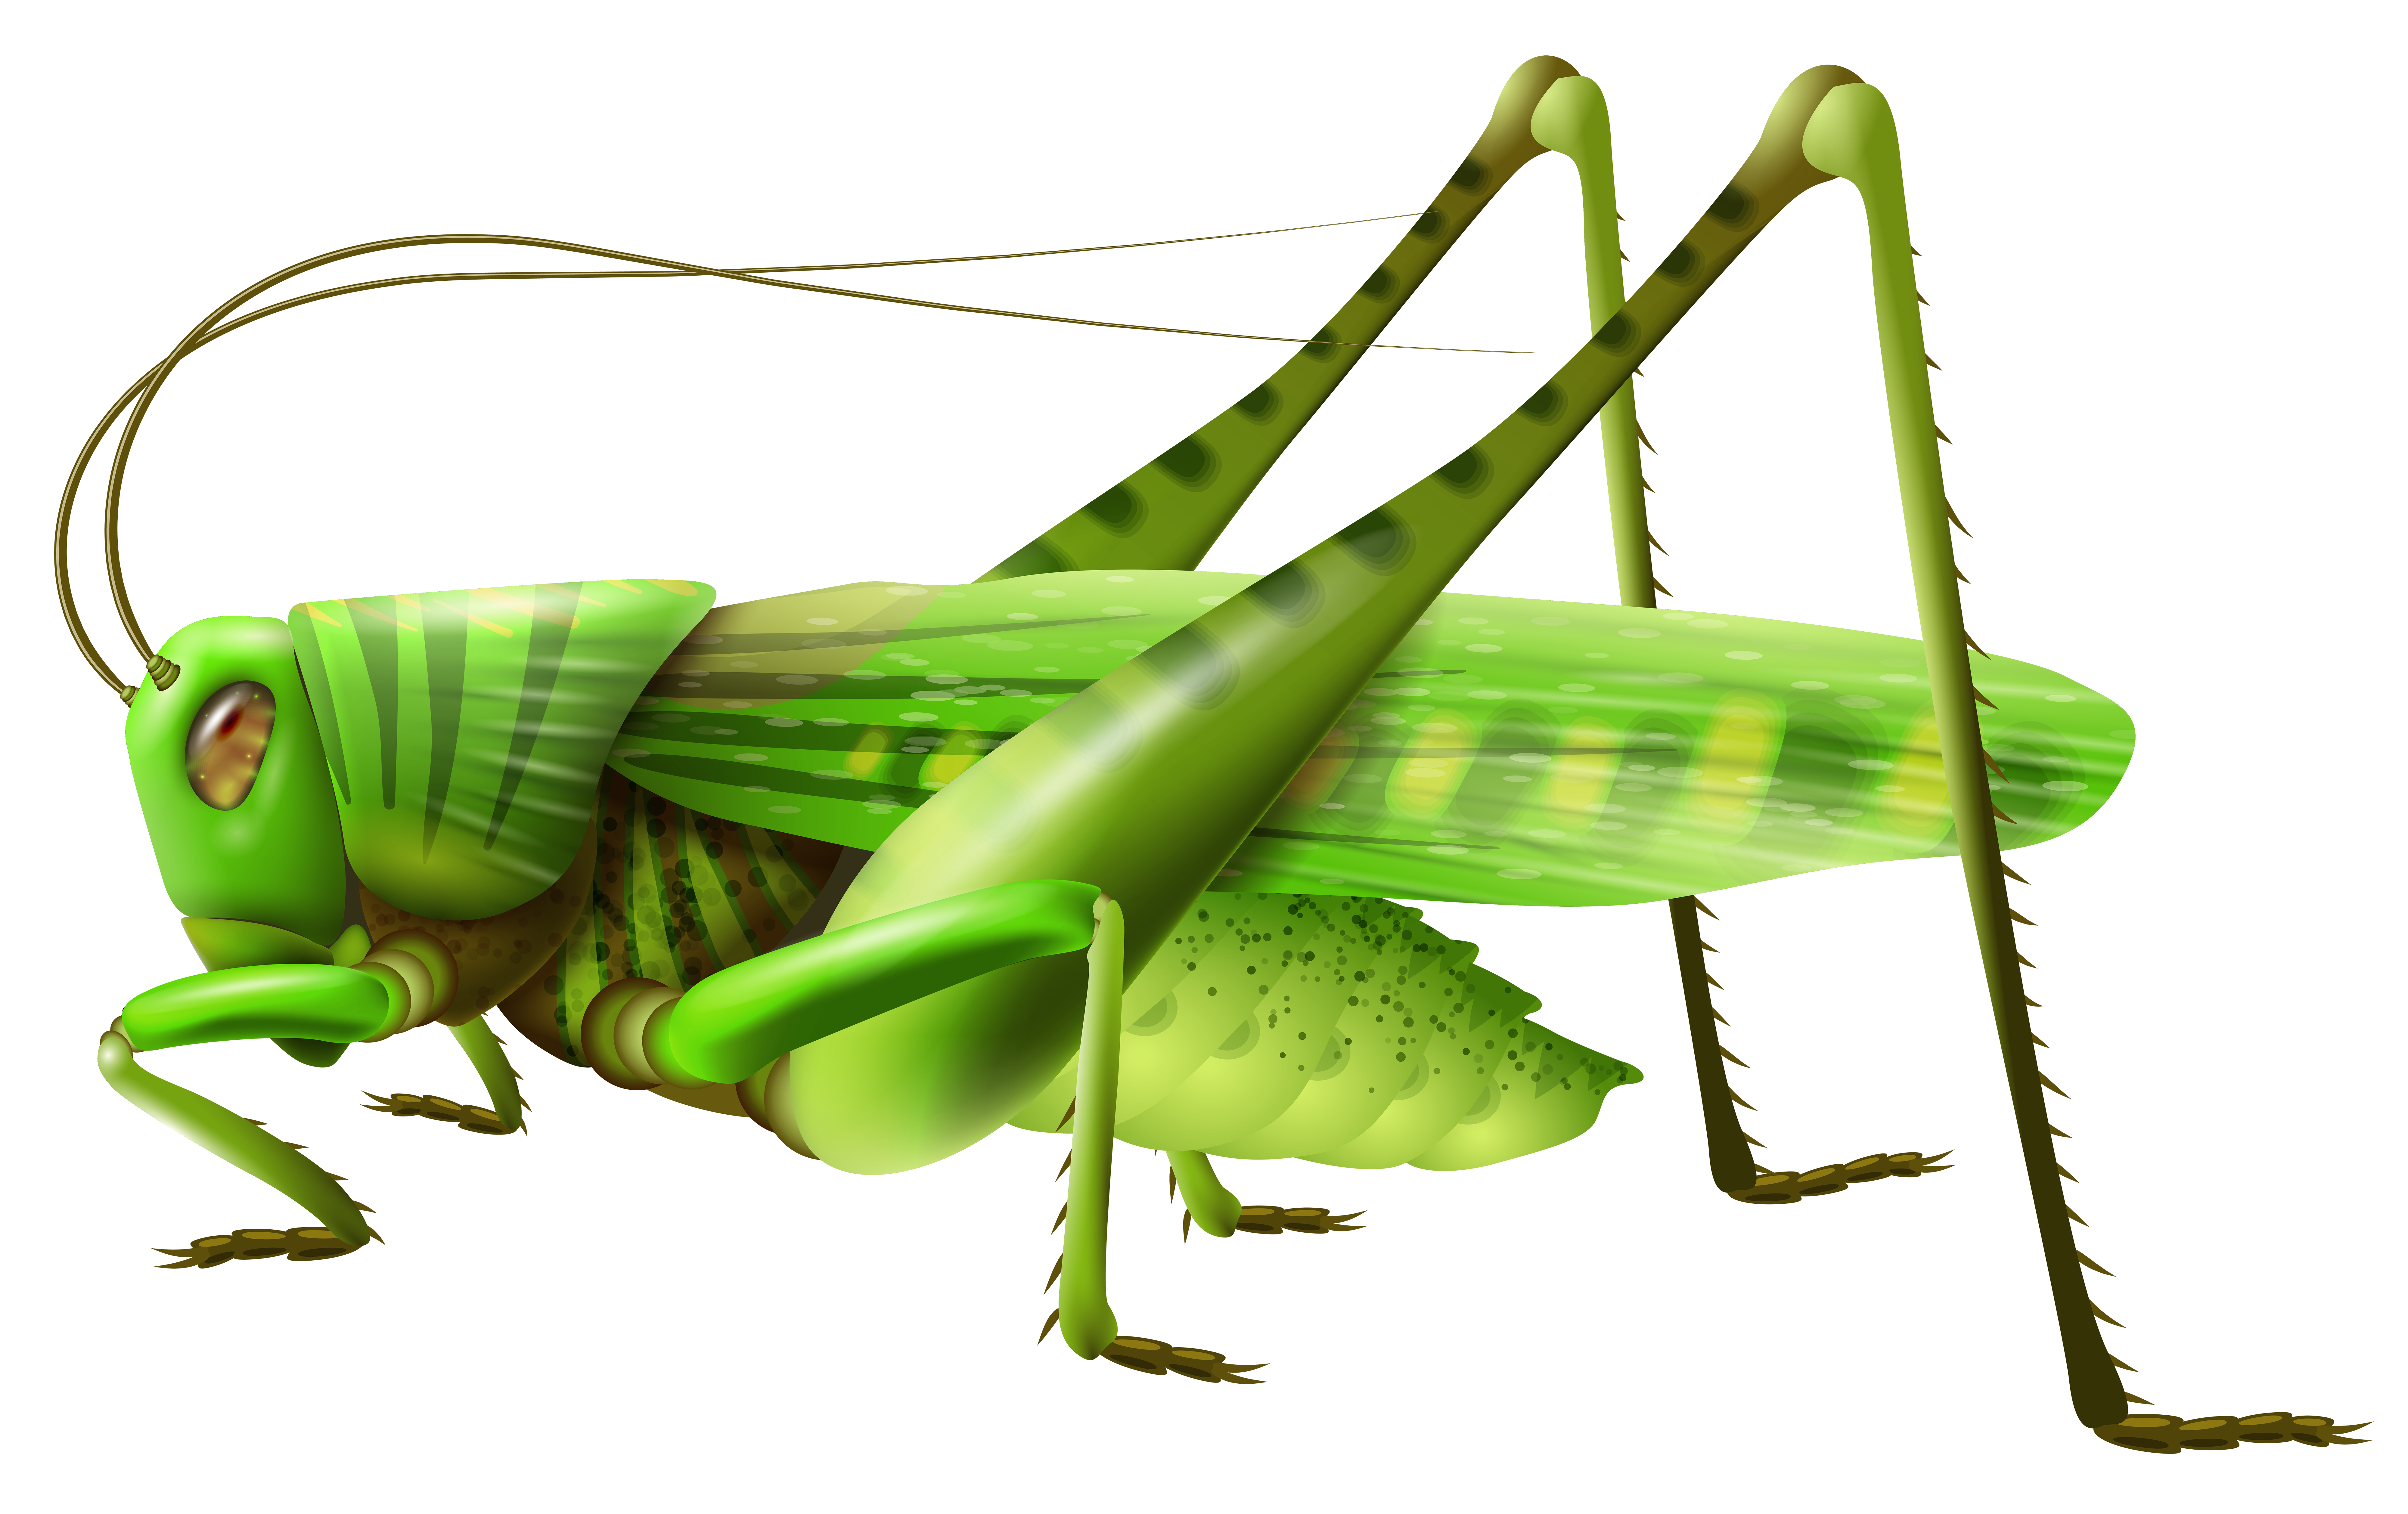 Grasshopper clipart #2, Download drawings